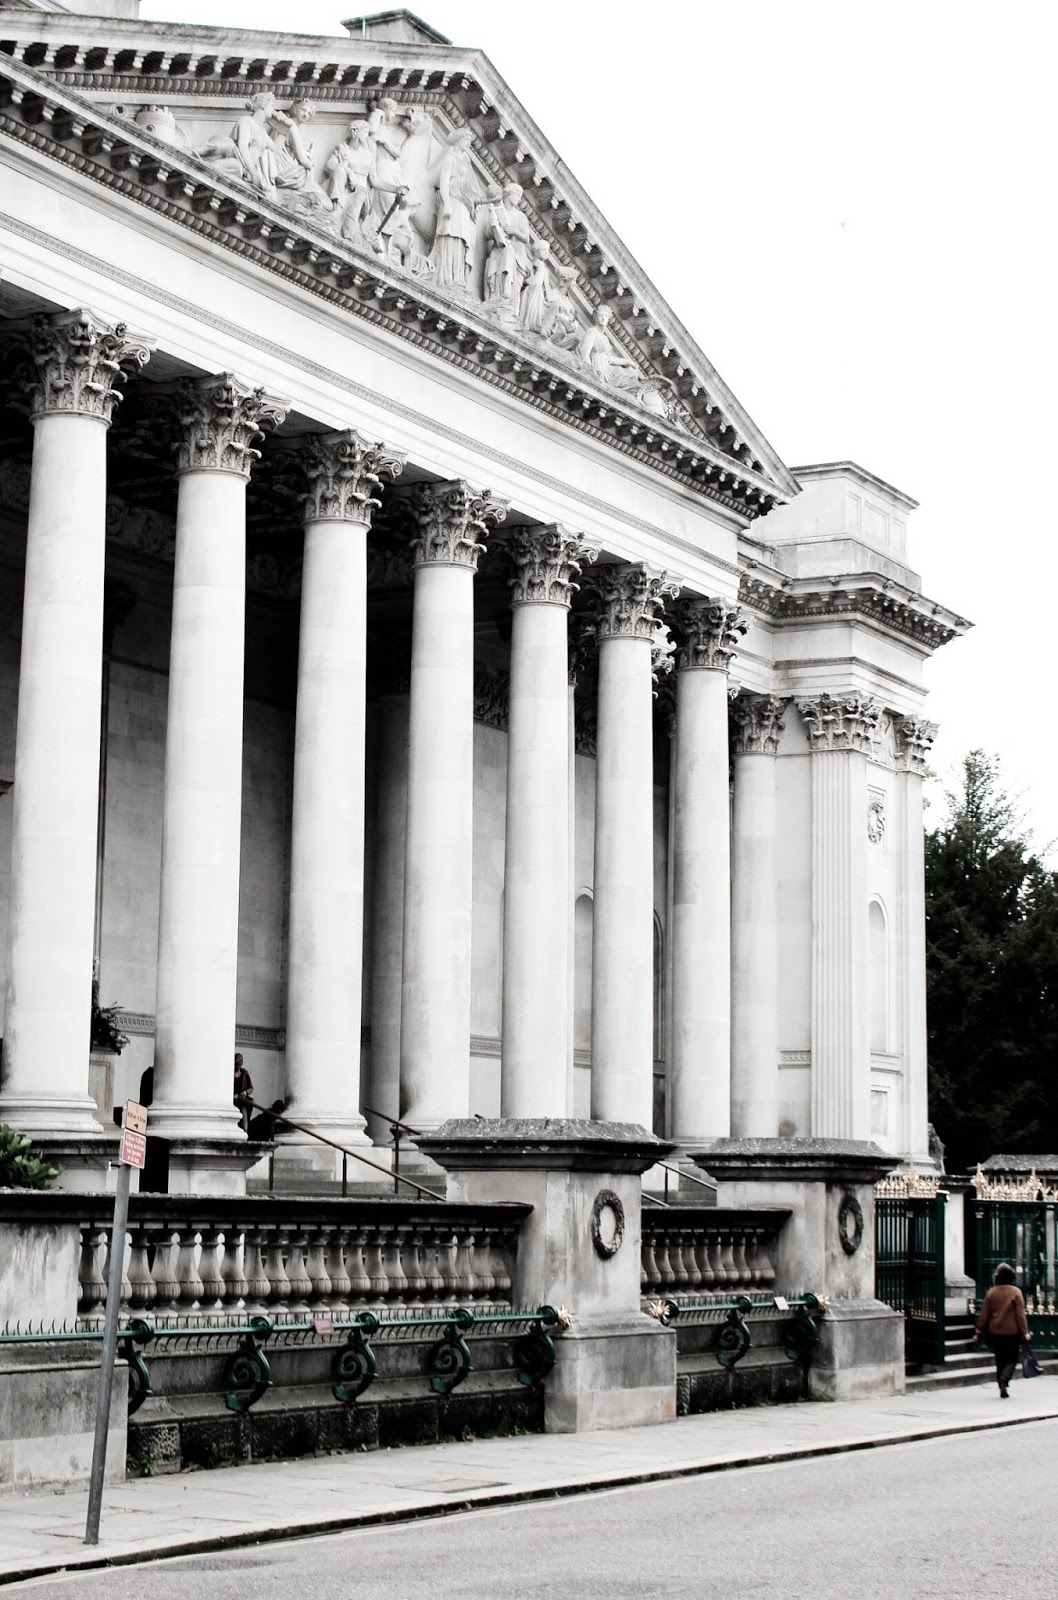 The Fitzwilliam Museum Architecture in Cambridge